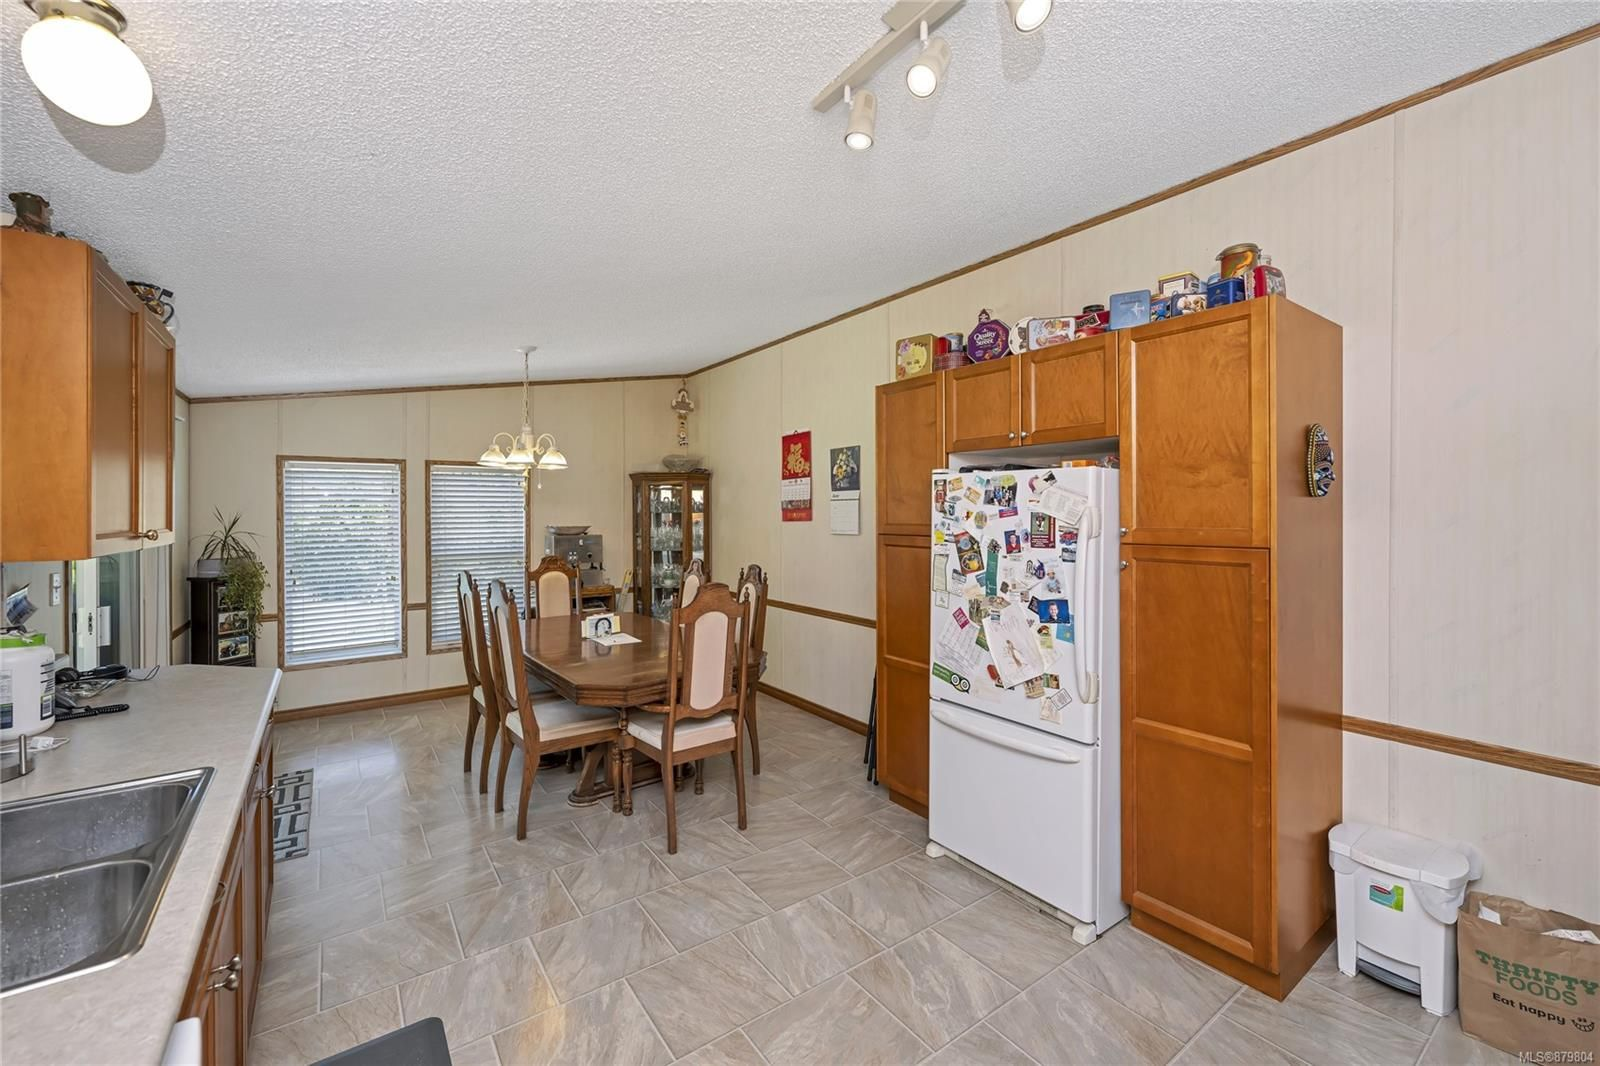 Photo 15: Photos: 3596 Riverside Rd in : ML Cobble Hill Manufactured Home for sale (Malahat & Area)  : MLS®# 879804